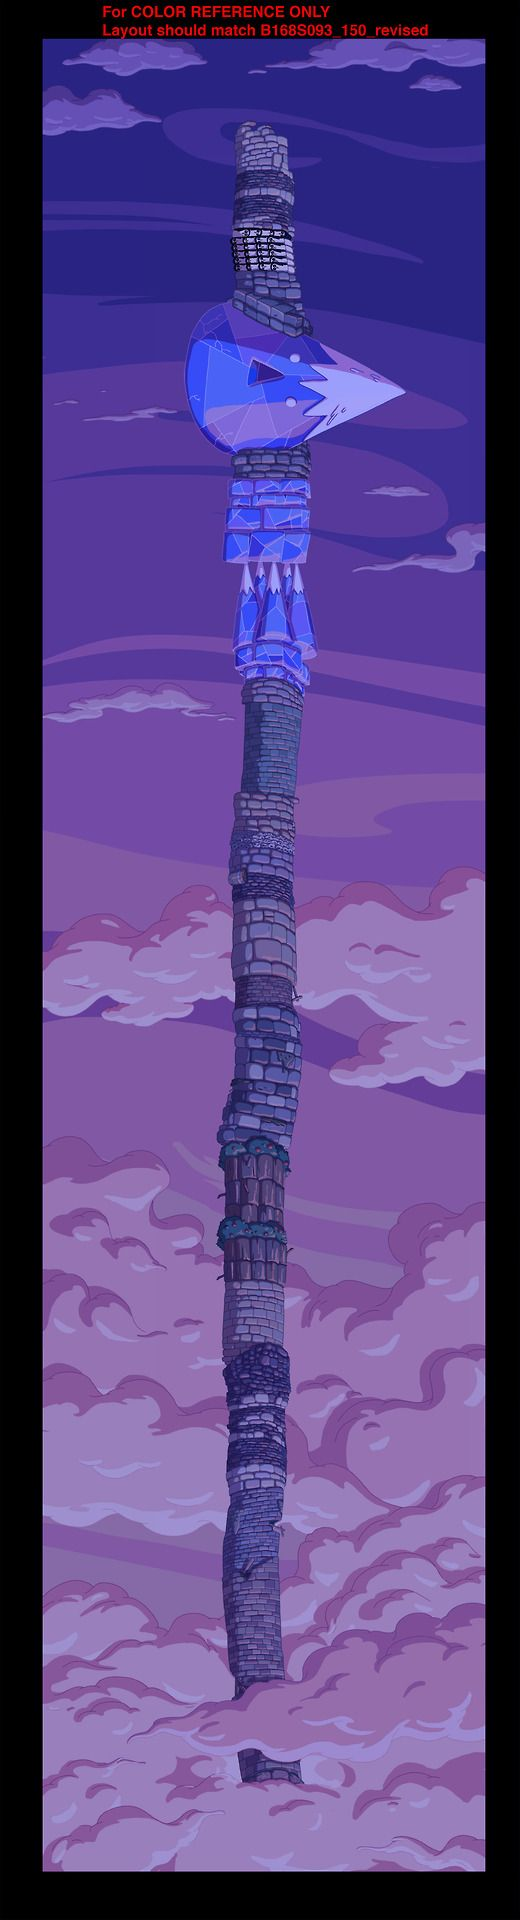 King of OOO - another section of Finn's tower from Adventure Time